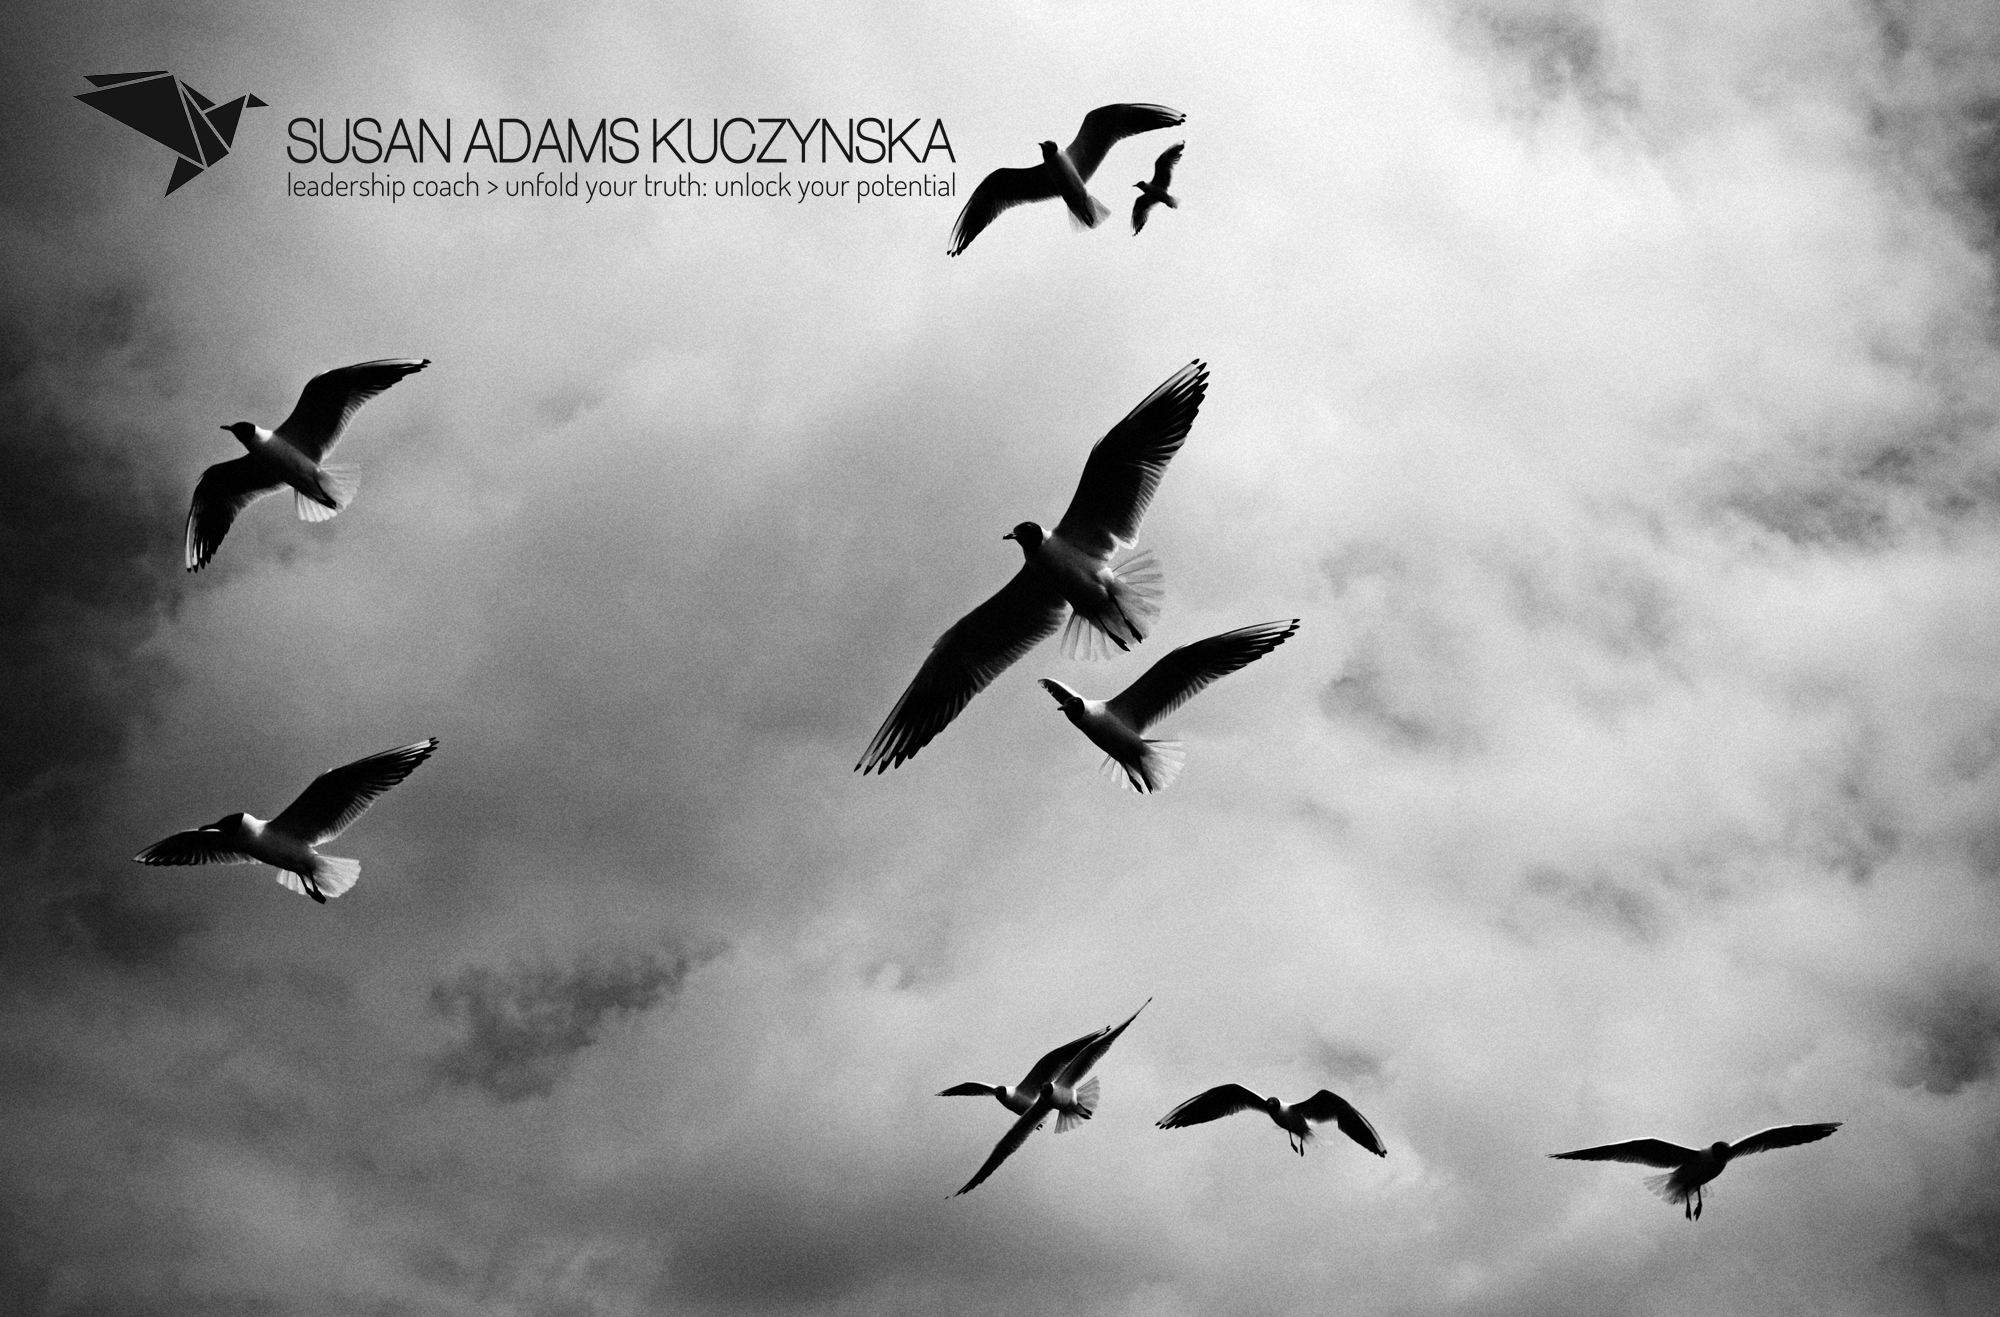 Birds flying in cloudy sky with SAK logo